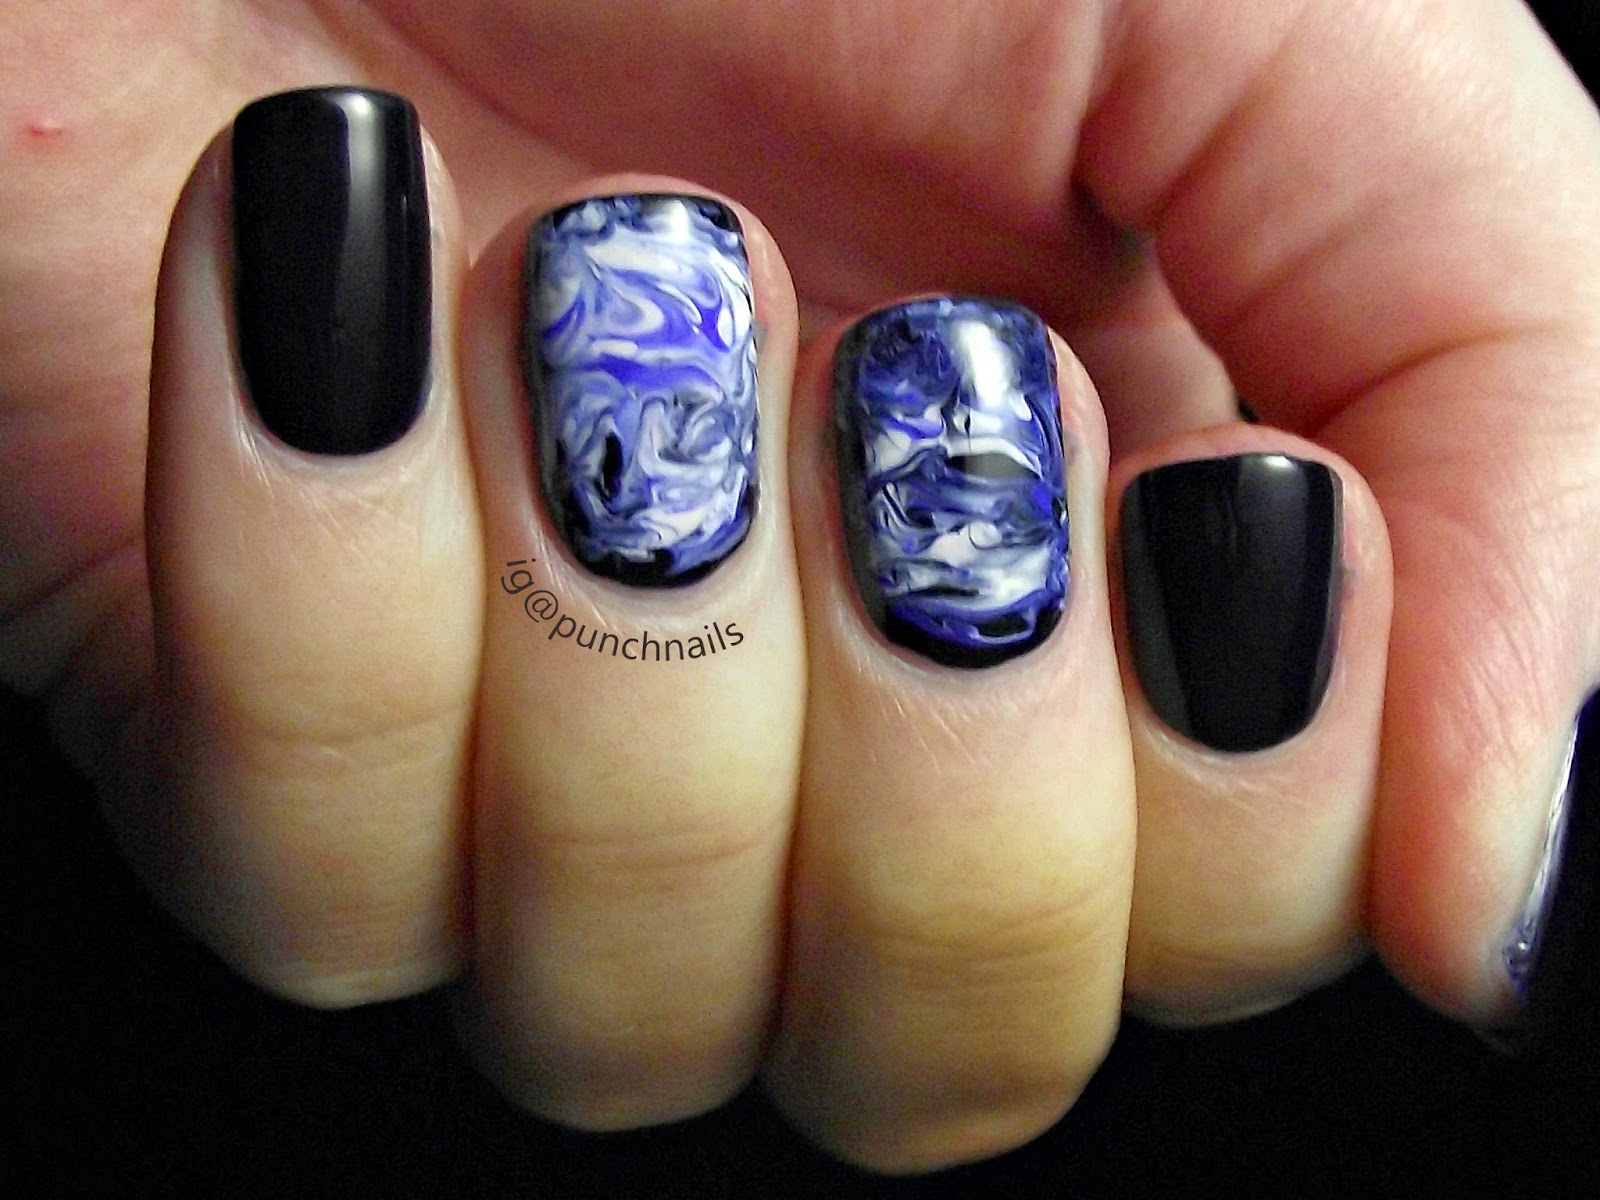 Punch Nails Dry Marble Nail Art Inspired By